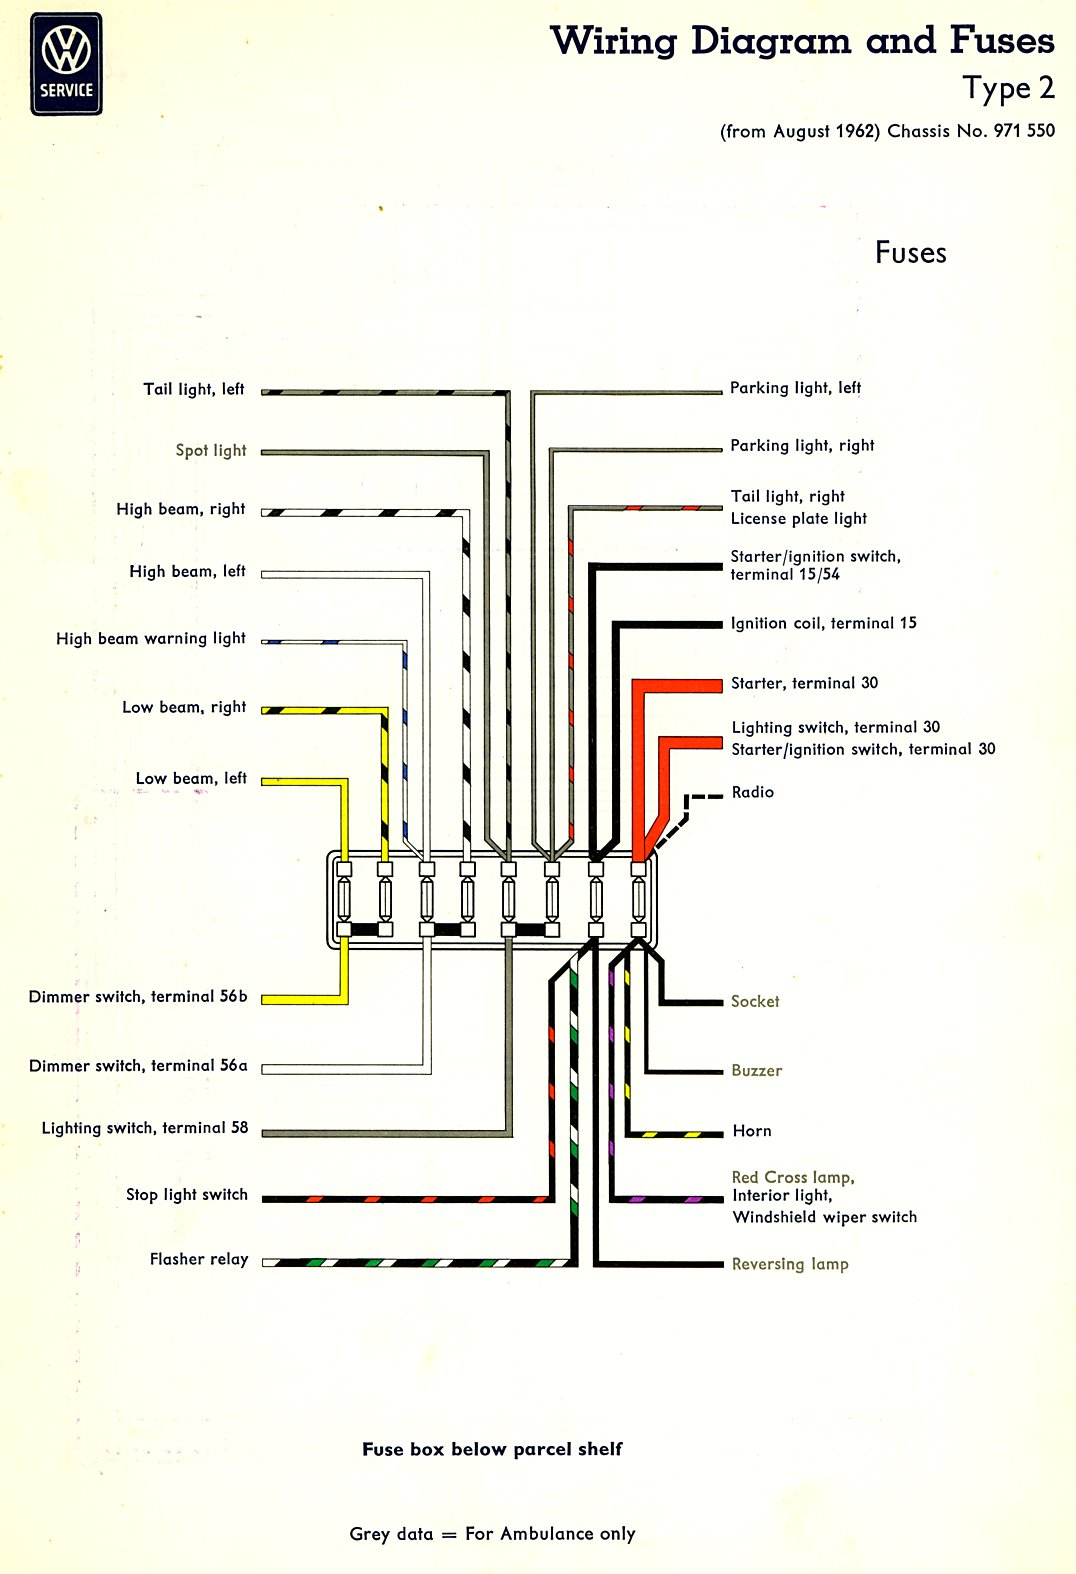 1970 vw tach wiring diagram basic guide wiring diagram \u2022 67 vw beetle wiring diagram thesamba com type 2 wiring diagrams rh thesamba com 1977 vw bus wiring diagram 1974 vw